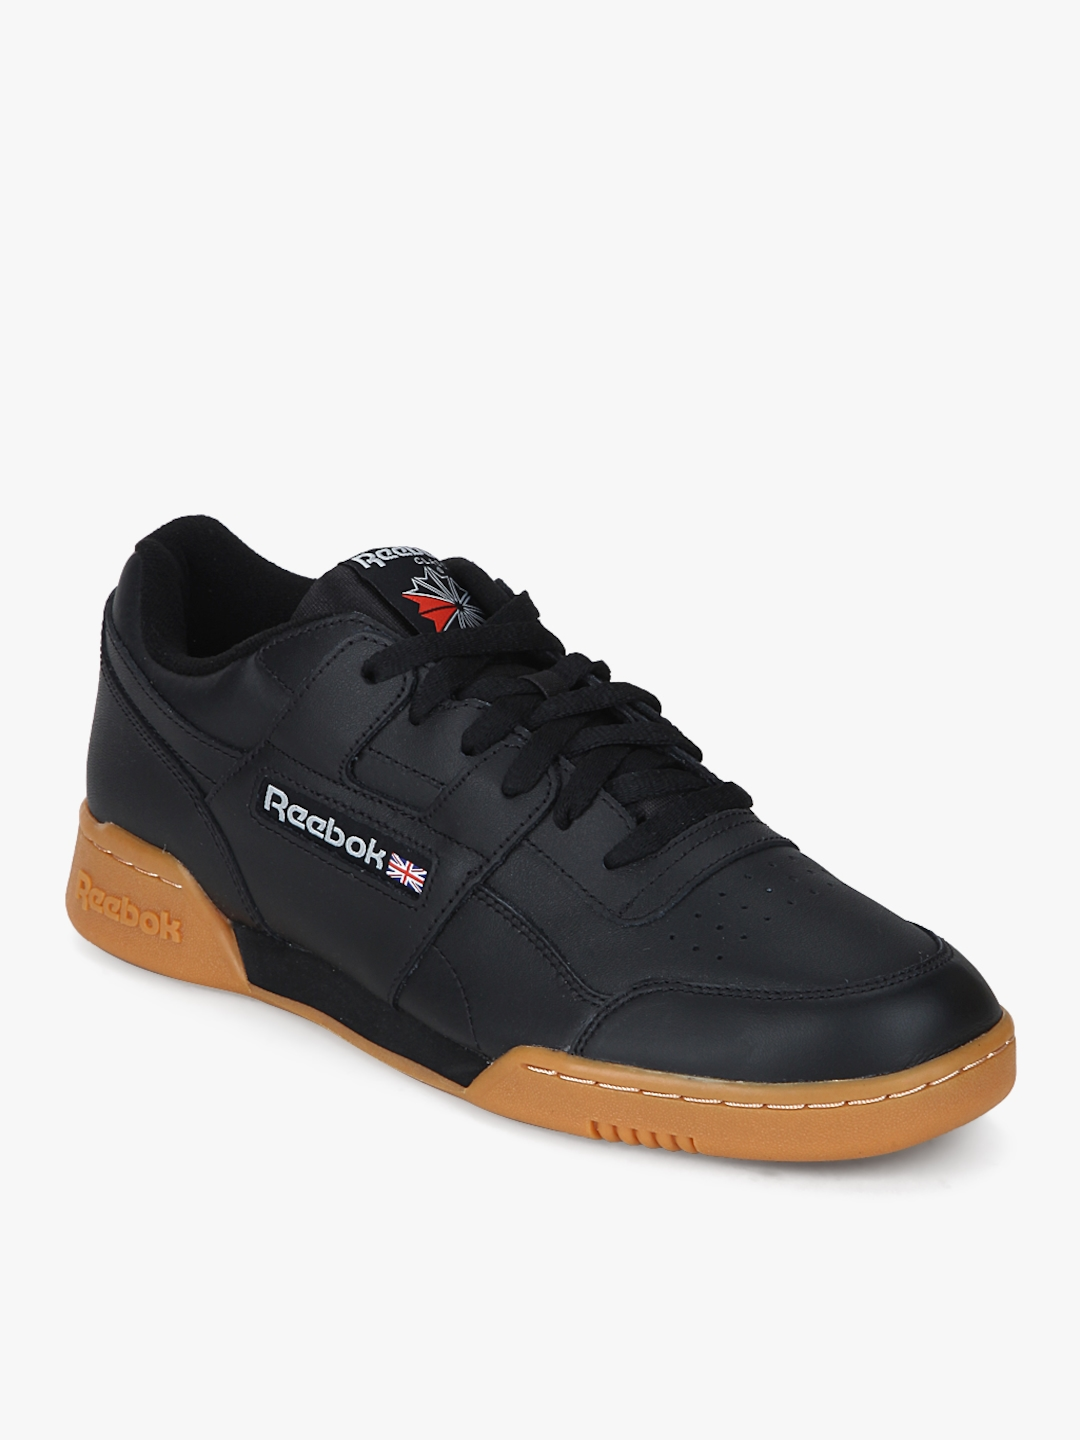 68fb33cfb10a9b Reebok Men Black Training or Gym Shoes. This product is already at its best  price